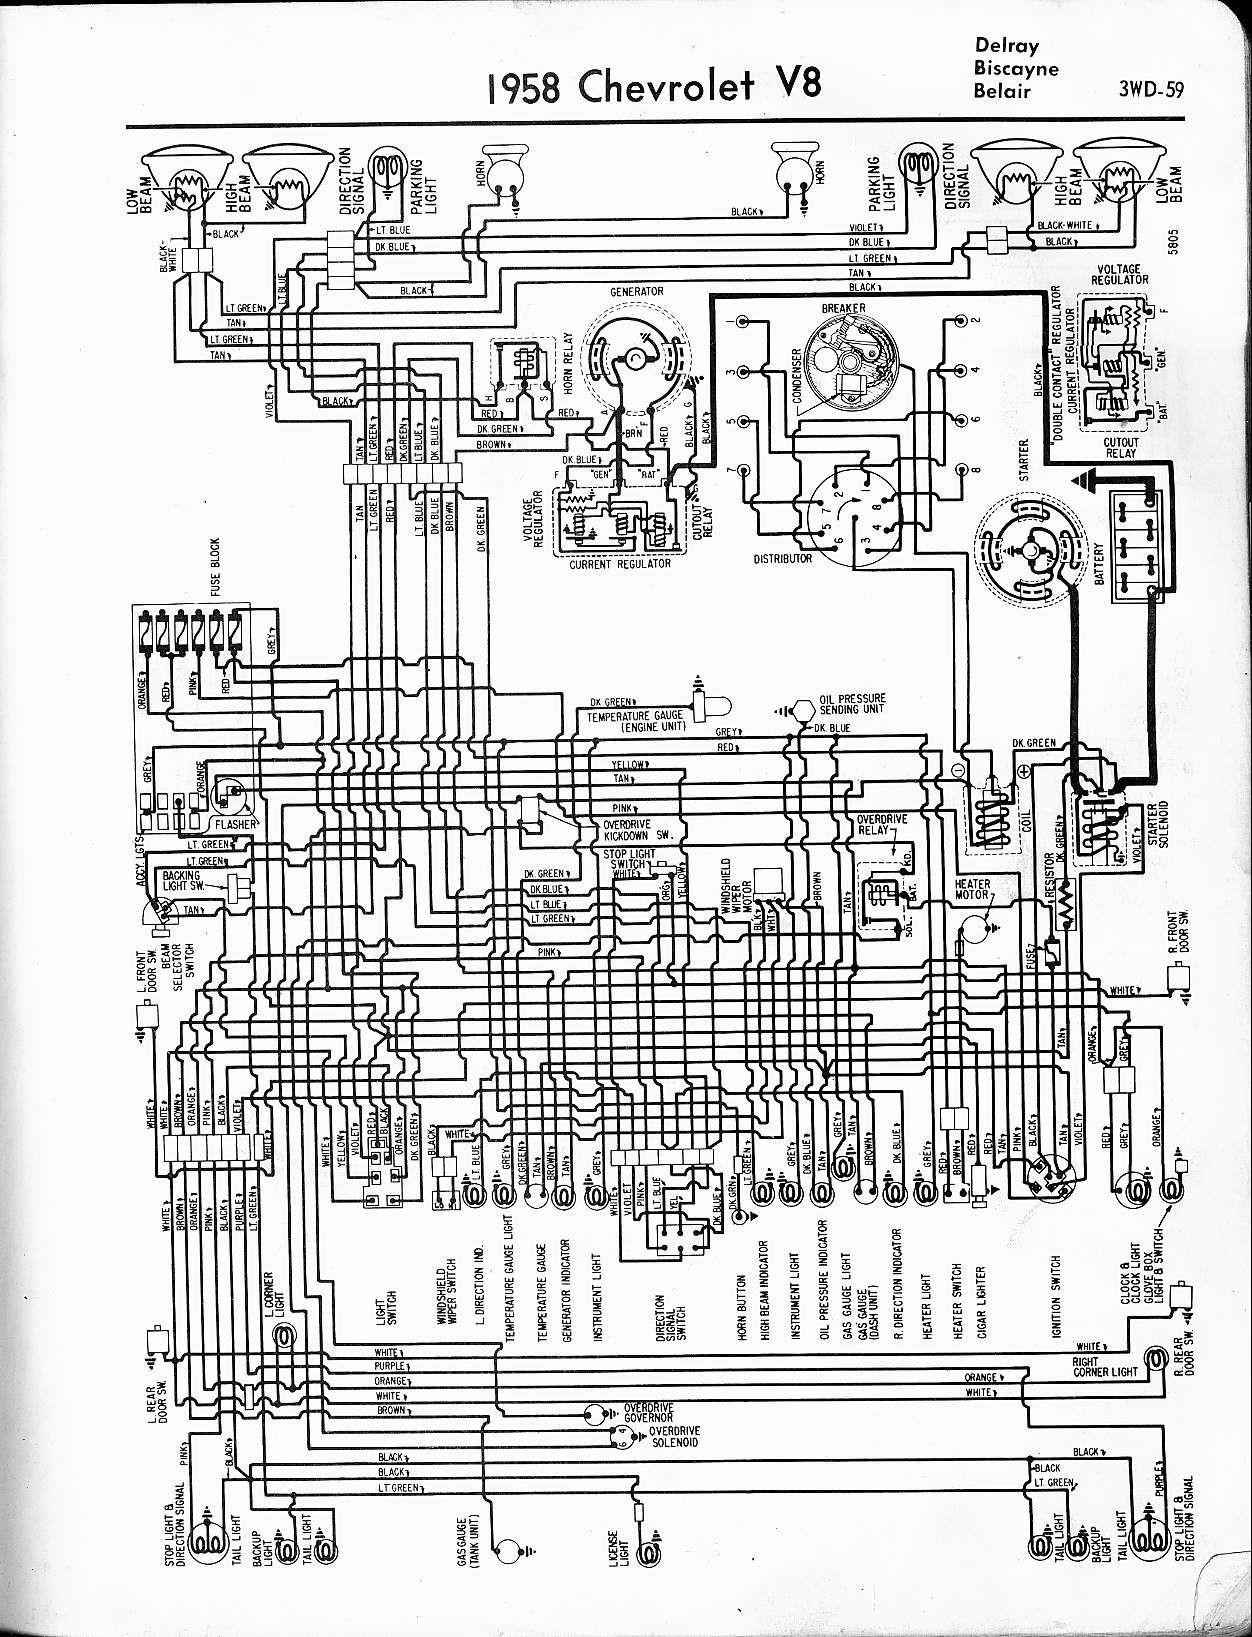 1984 chevrolet c10 wiring diagram discovery 2 electric window harness for chevy truck get free